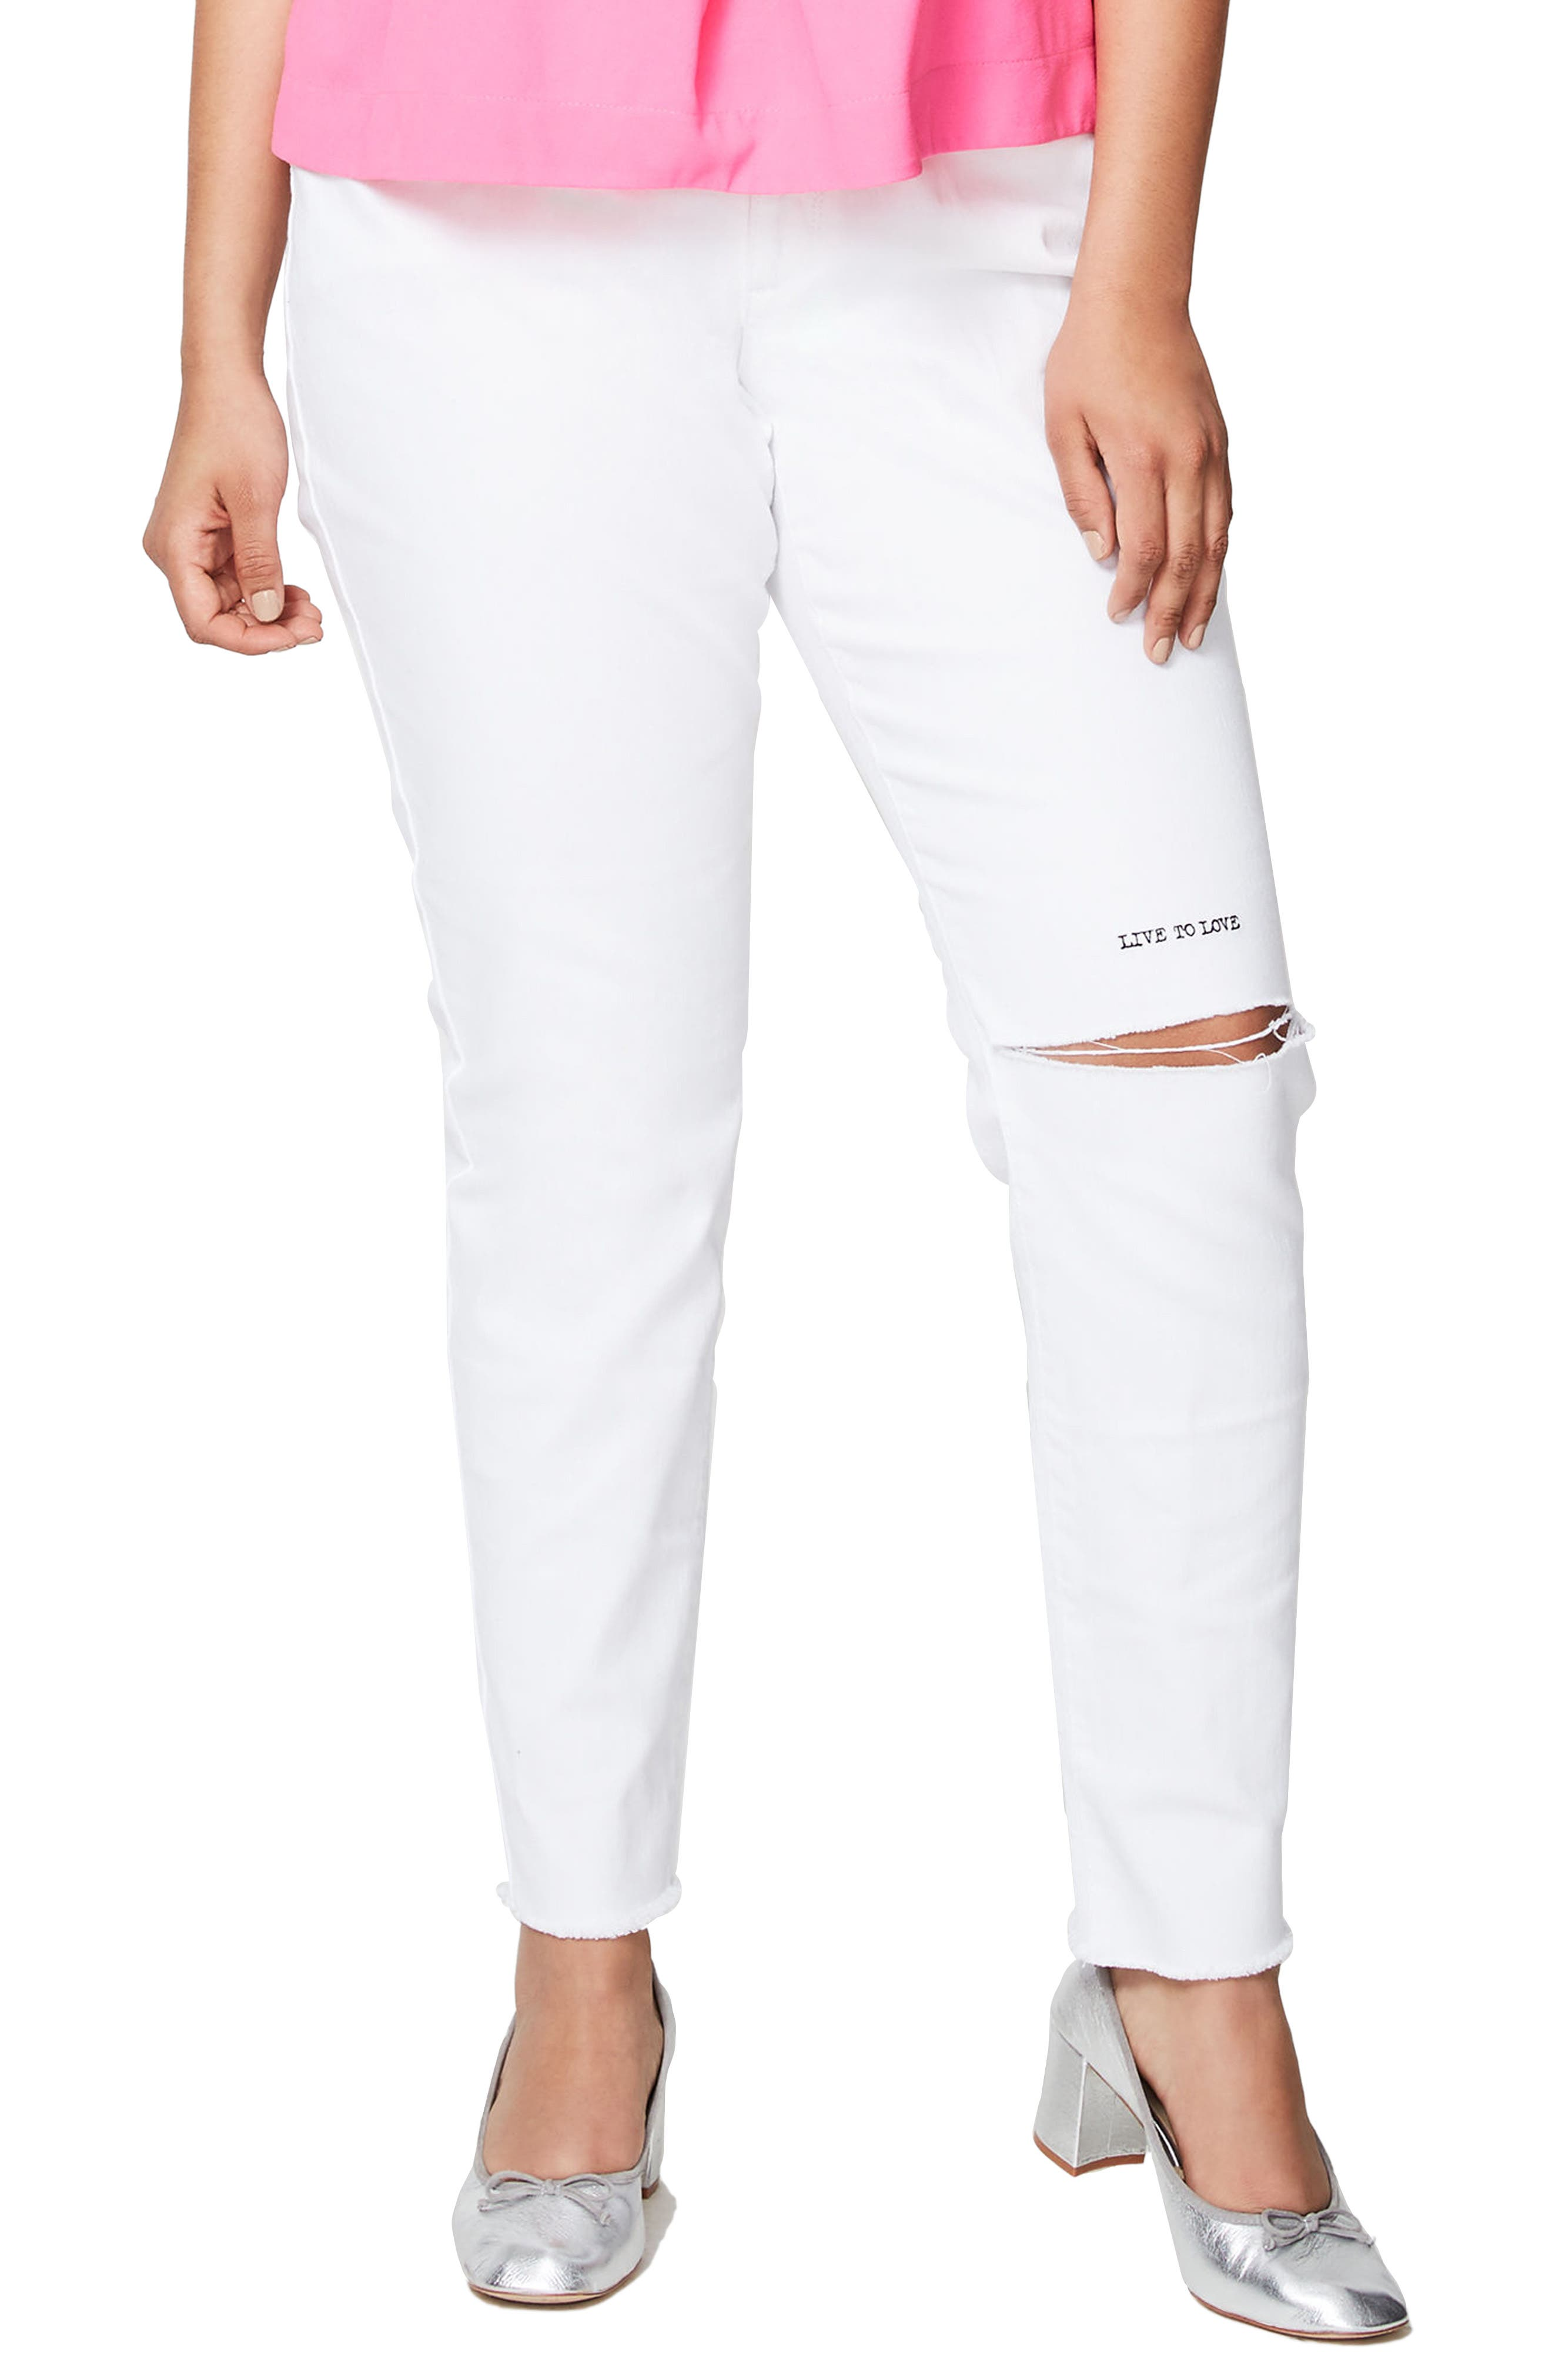 Rachel Roy Live to Love Ripped Skinny Jeans,                             Main thumbnail 1, color,                             100